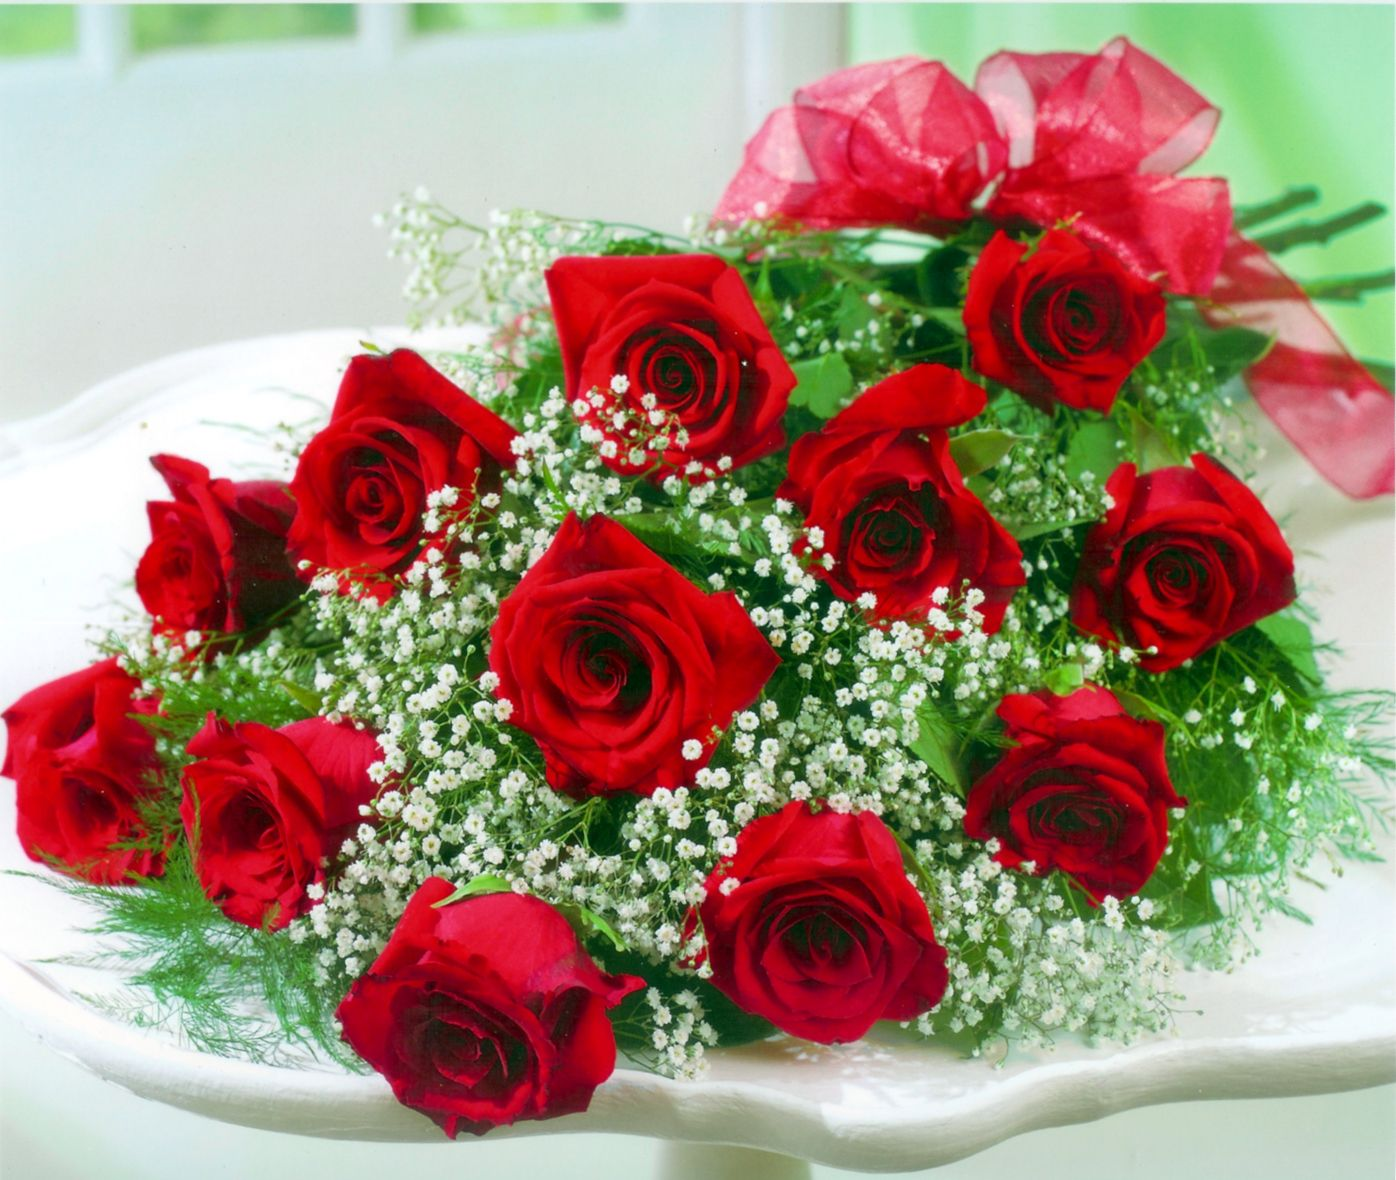 12 red rose hand tied bouquet - flowers and floral art. | flowers